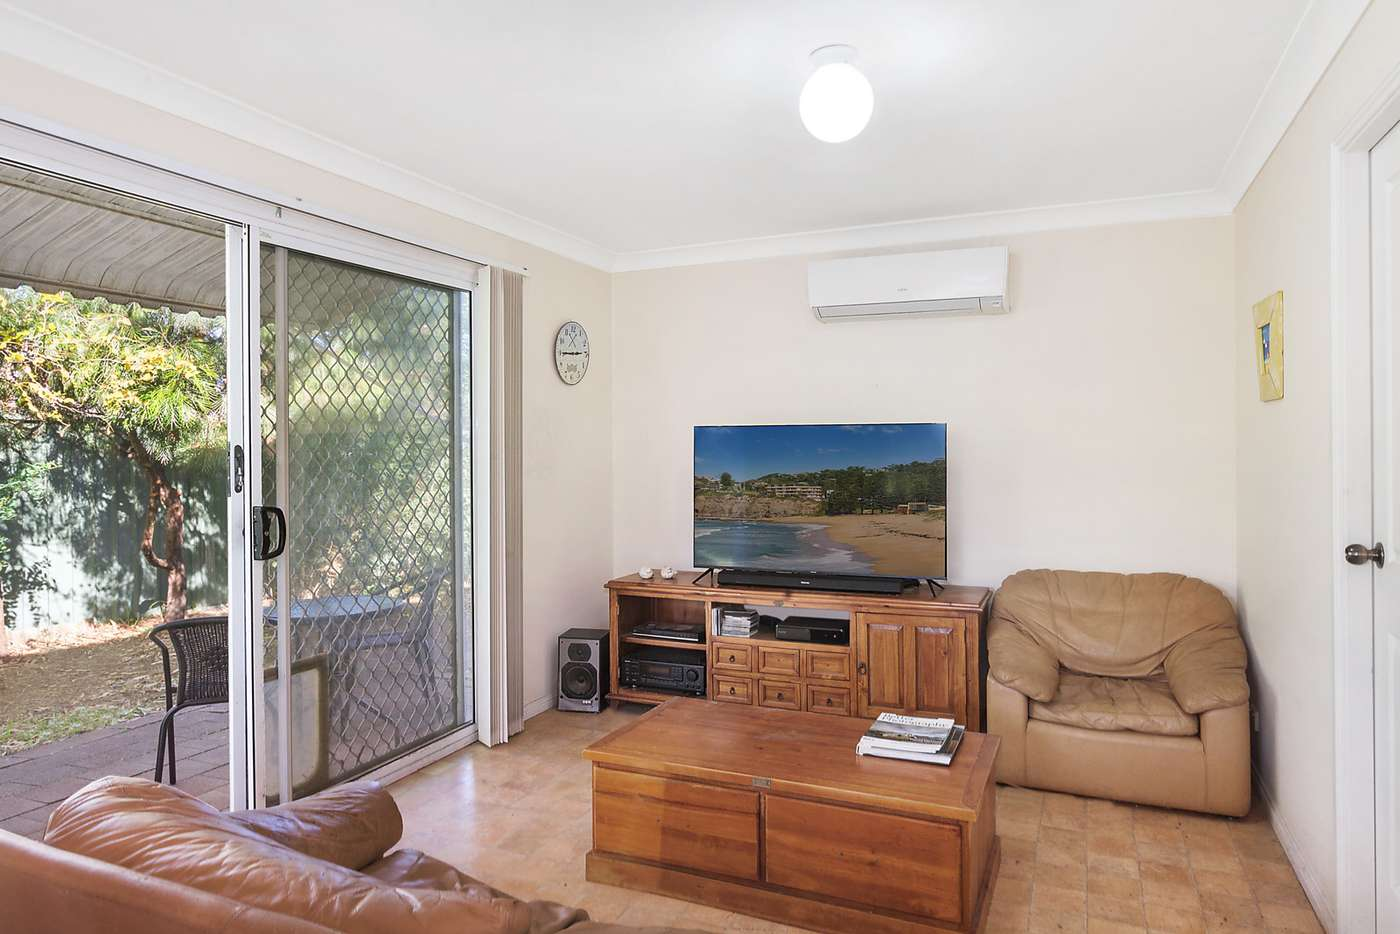 Sixth view of Homely house listing, 36 Adelaide Avenue, Umina Beach NSW 2257